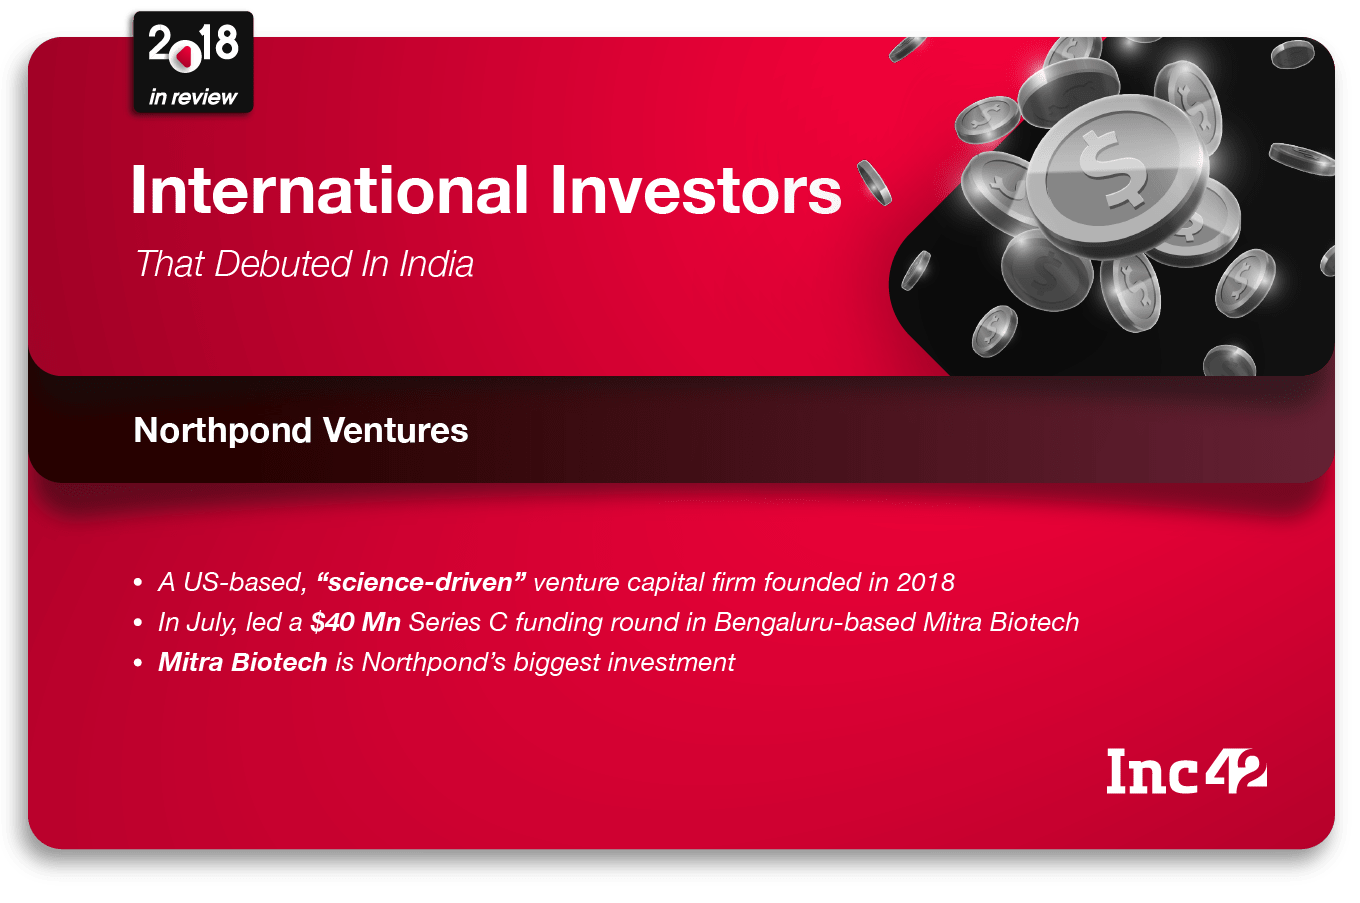 2018 In Review: International Investors That Debuted In India